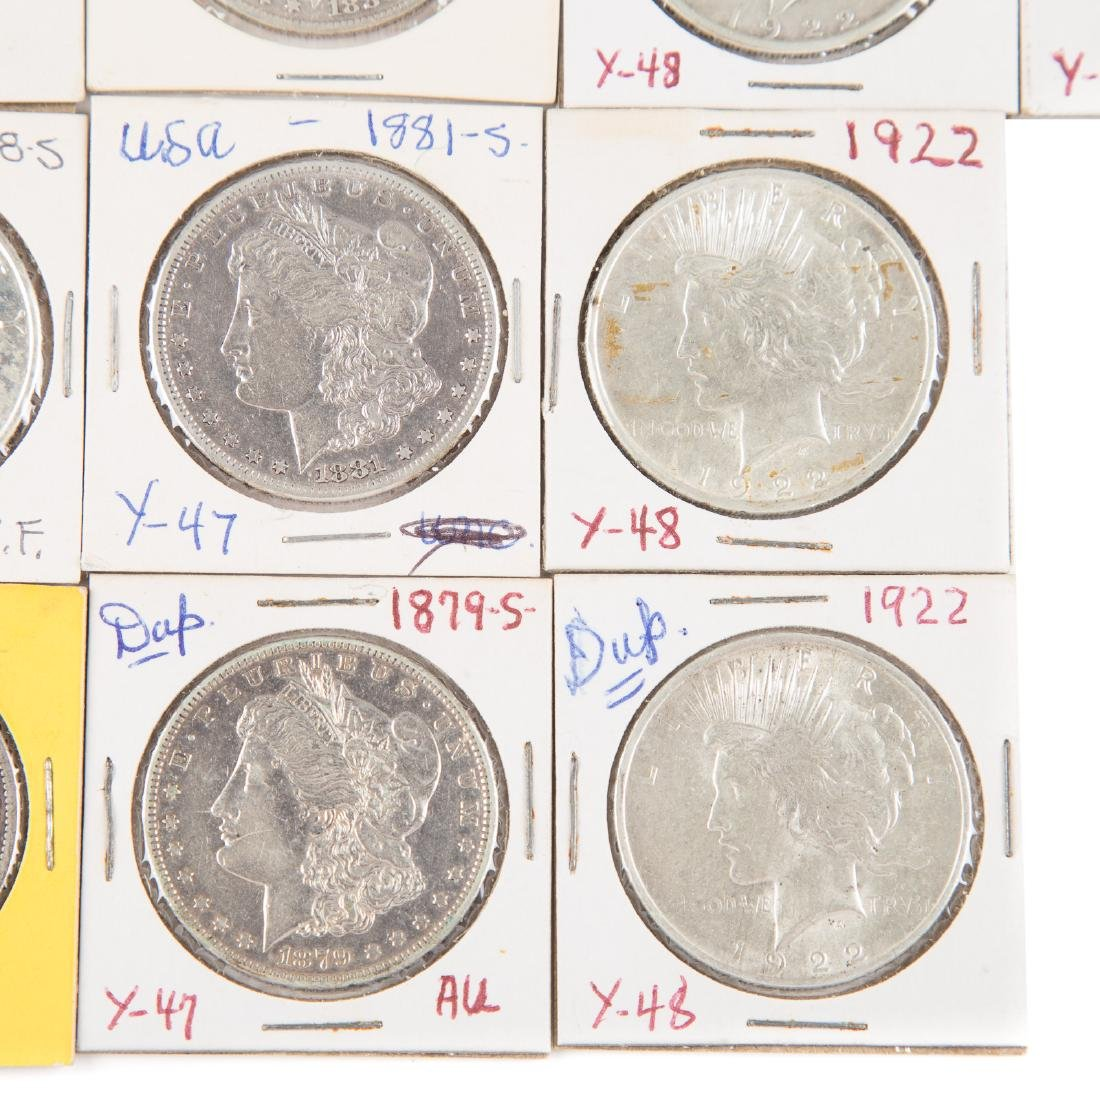 [US] 33 Morgan and Peace Silver Dollars - 2